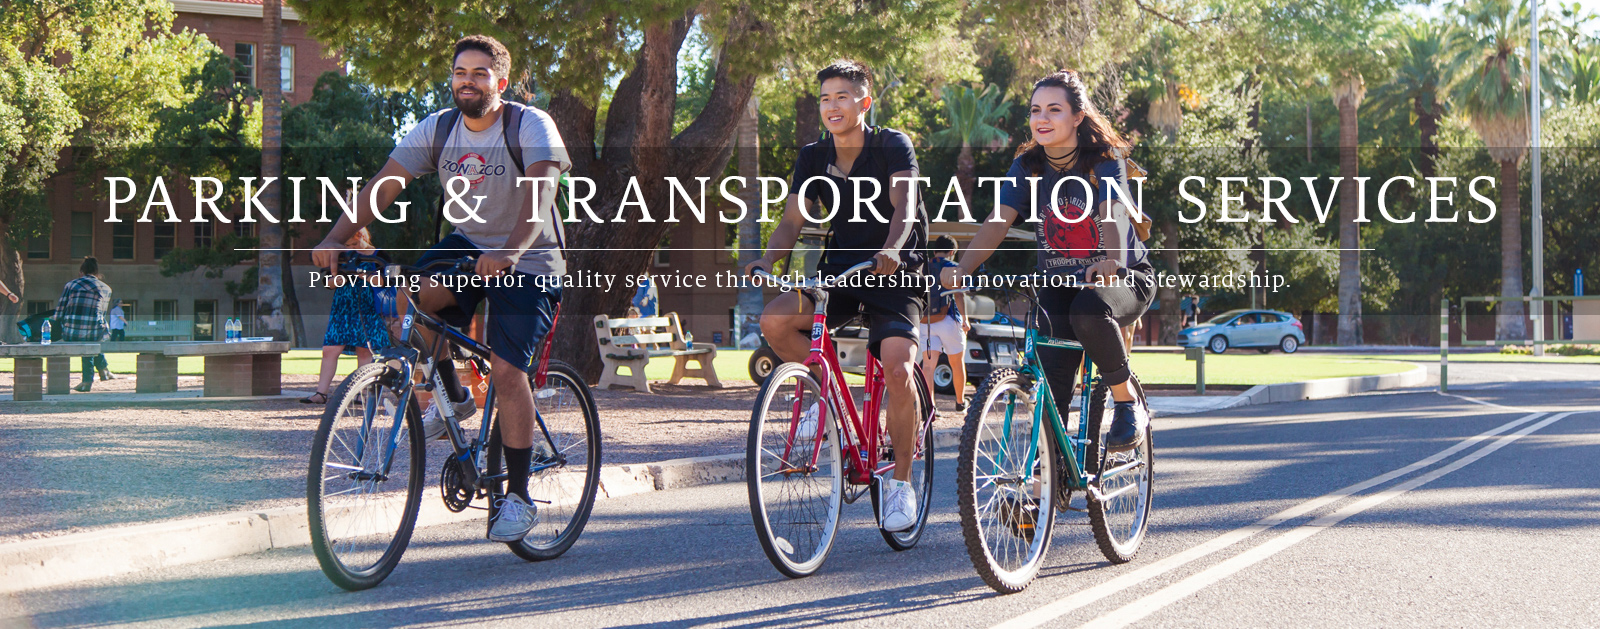 UA Parking & Transportation Home Page Banner